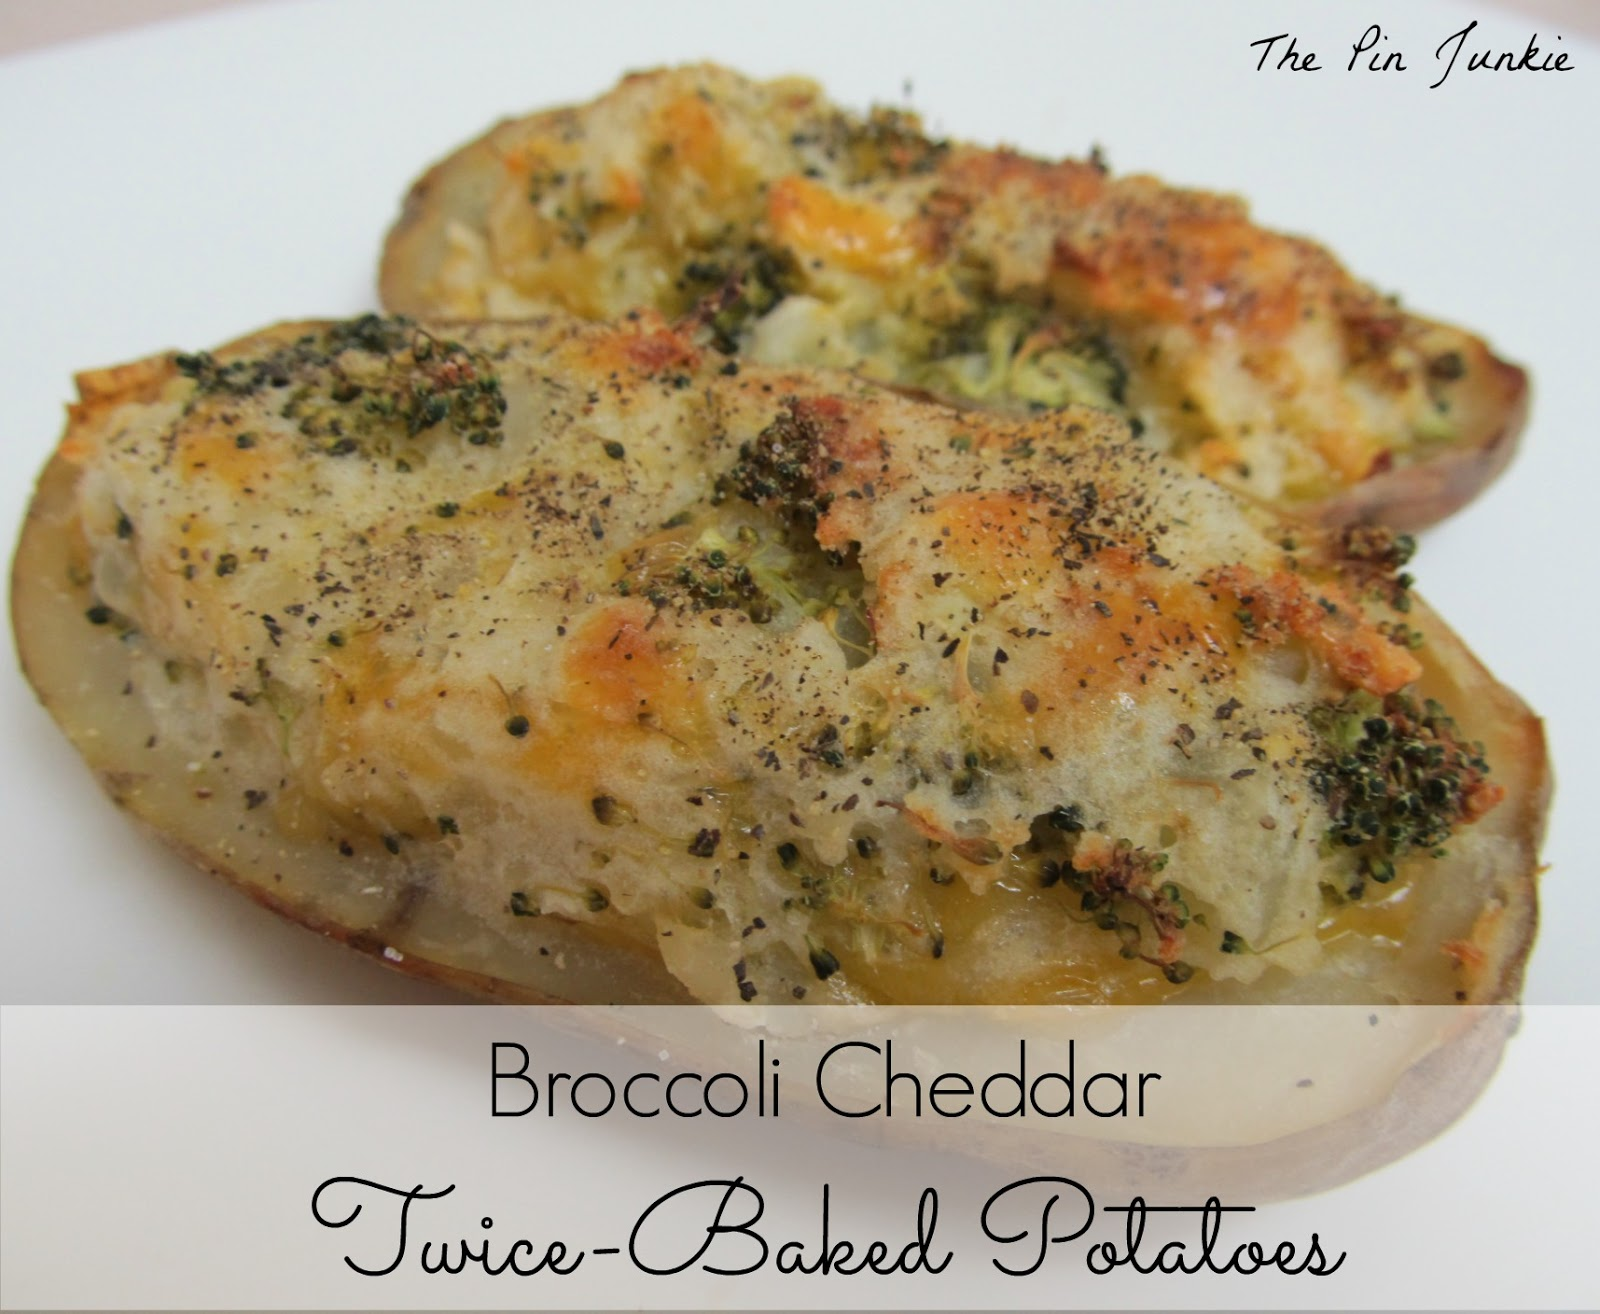 Broccoli And Cheddar Skinny Potato Skins Recipes — Dishmaps